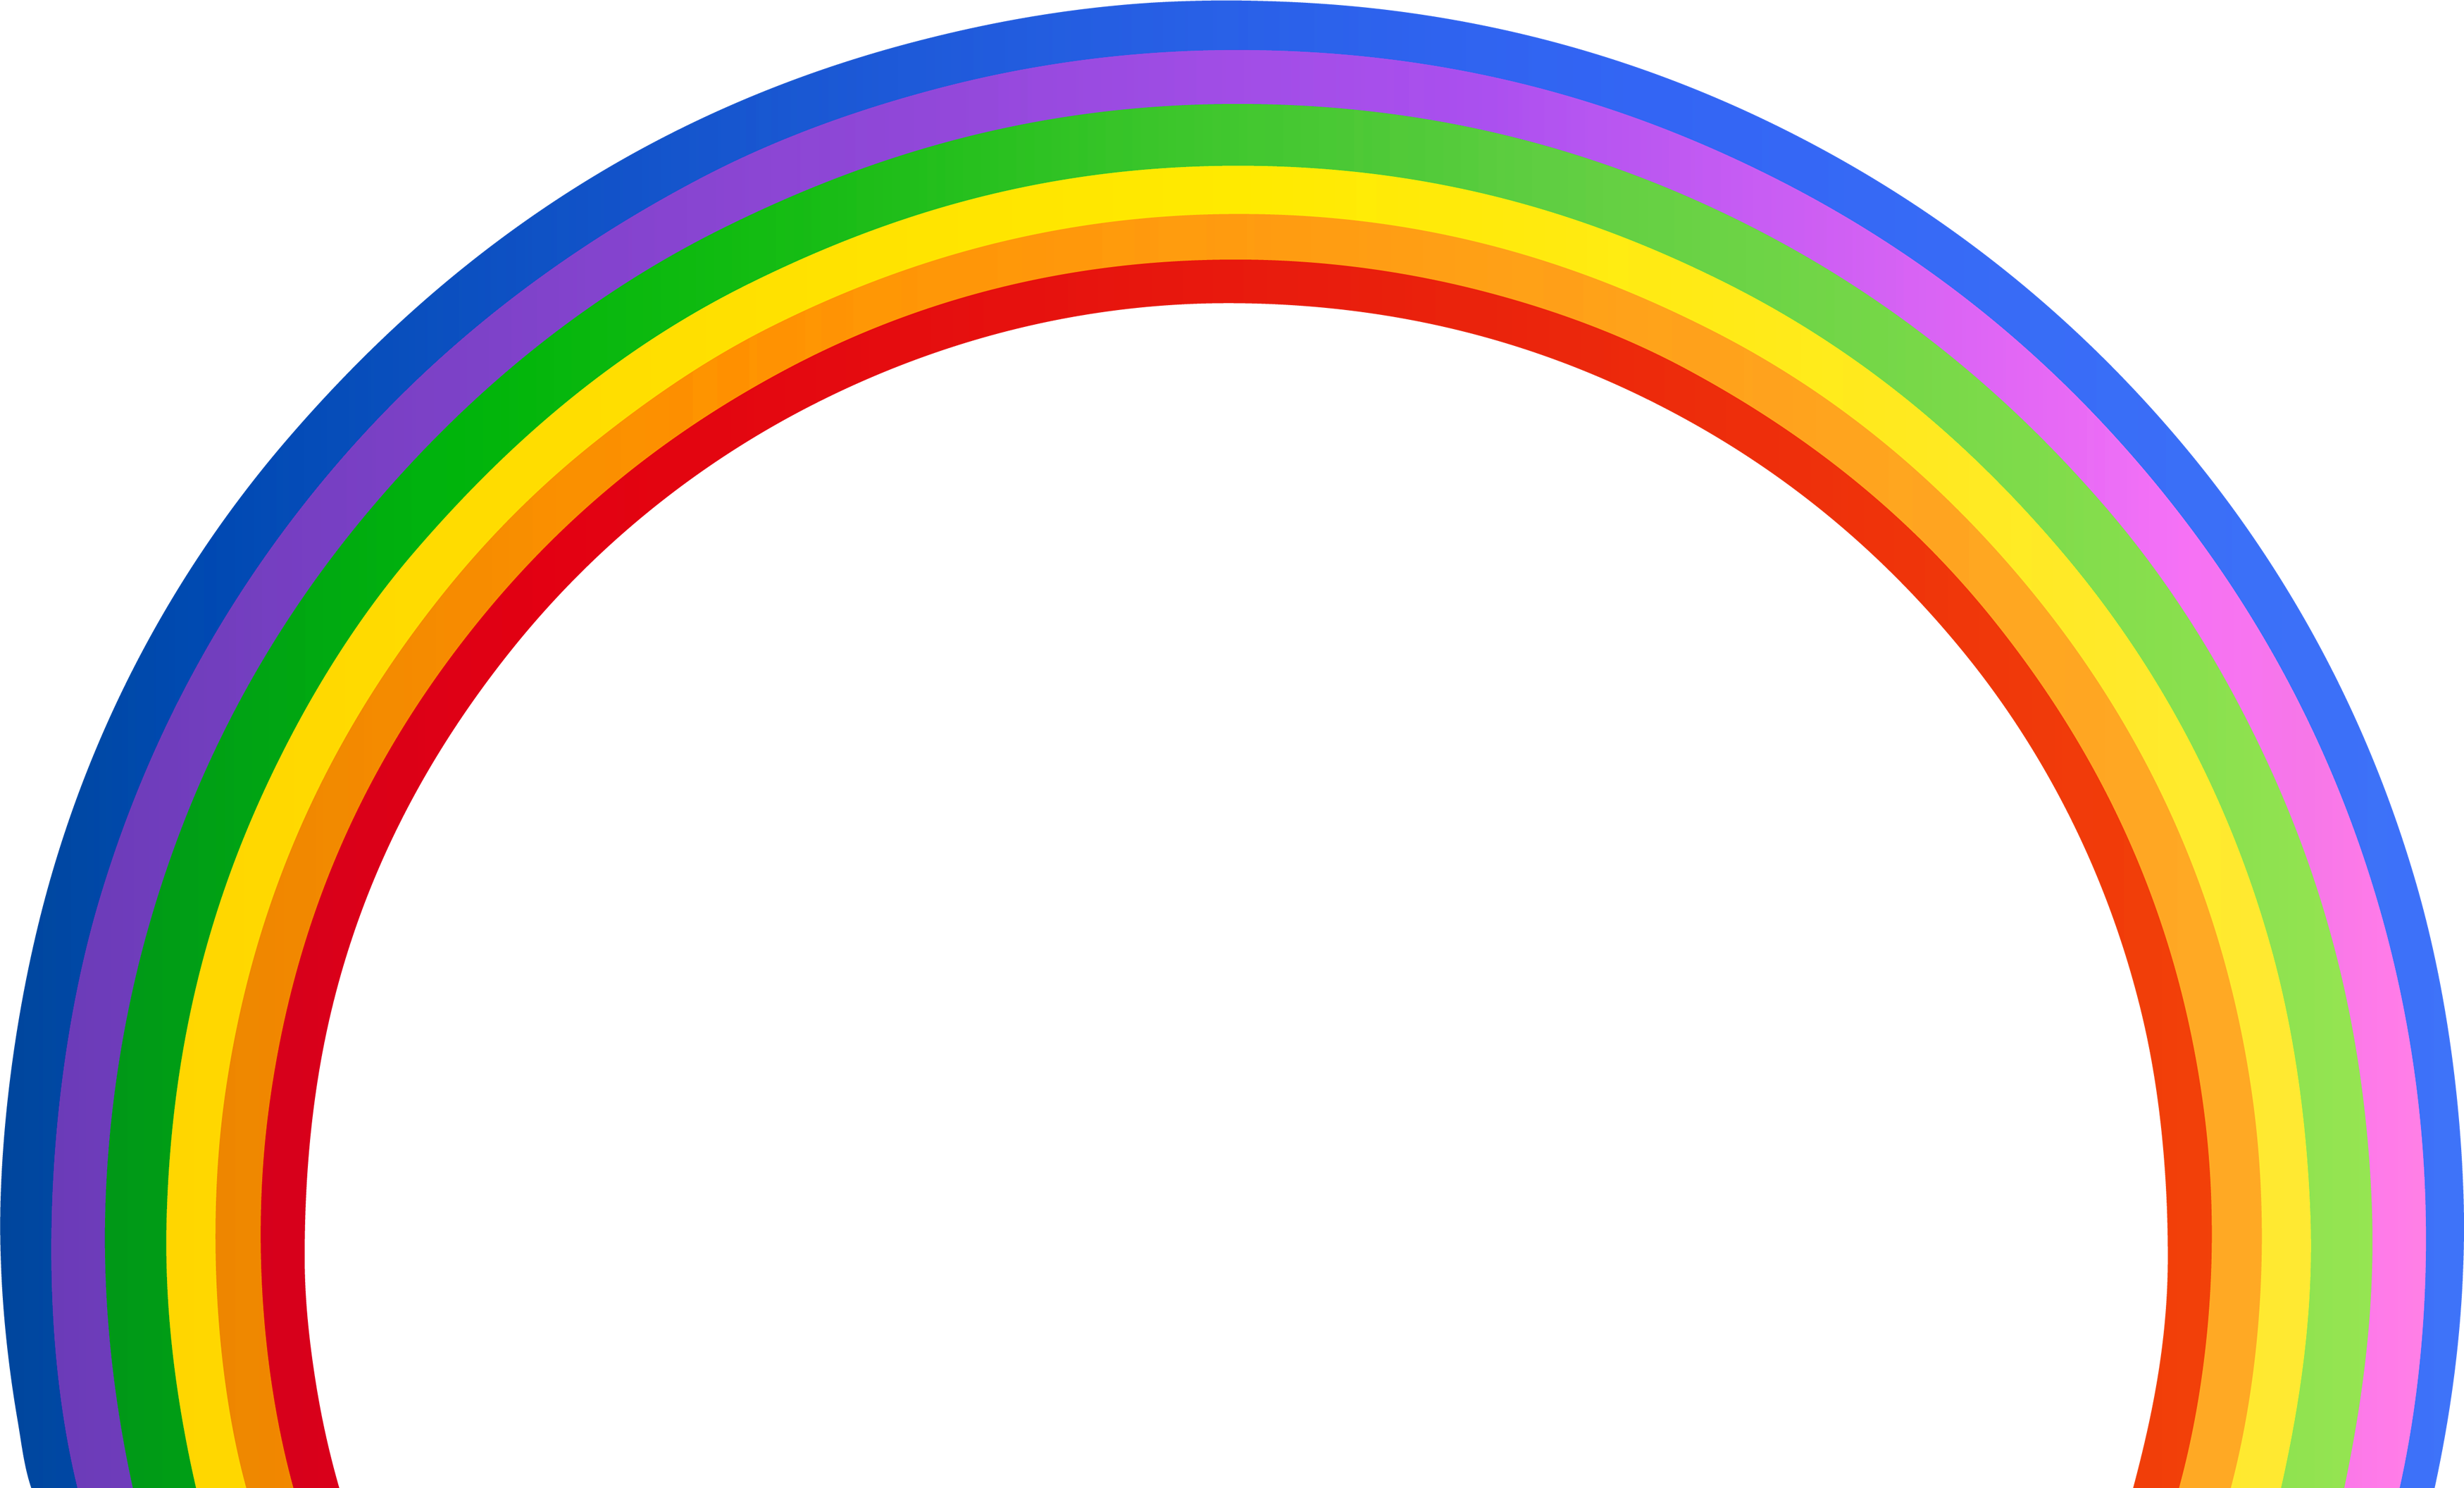 Rainbow Png Transparent image #7002